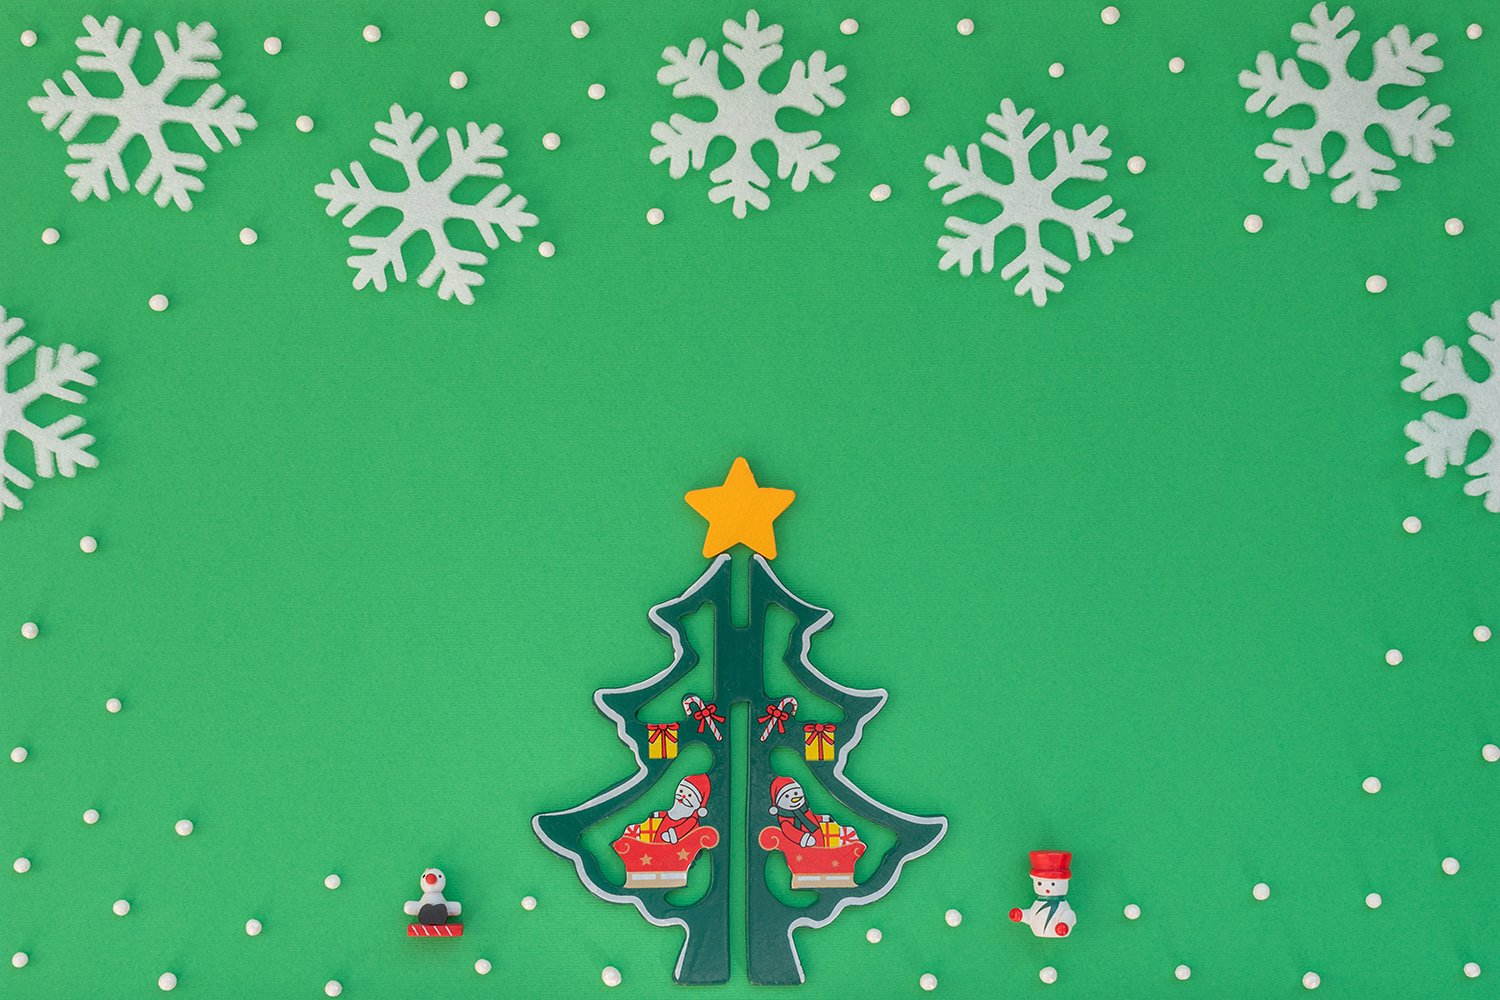 Wooden Christmas tree and white snowflakes example image 1